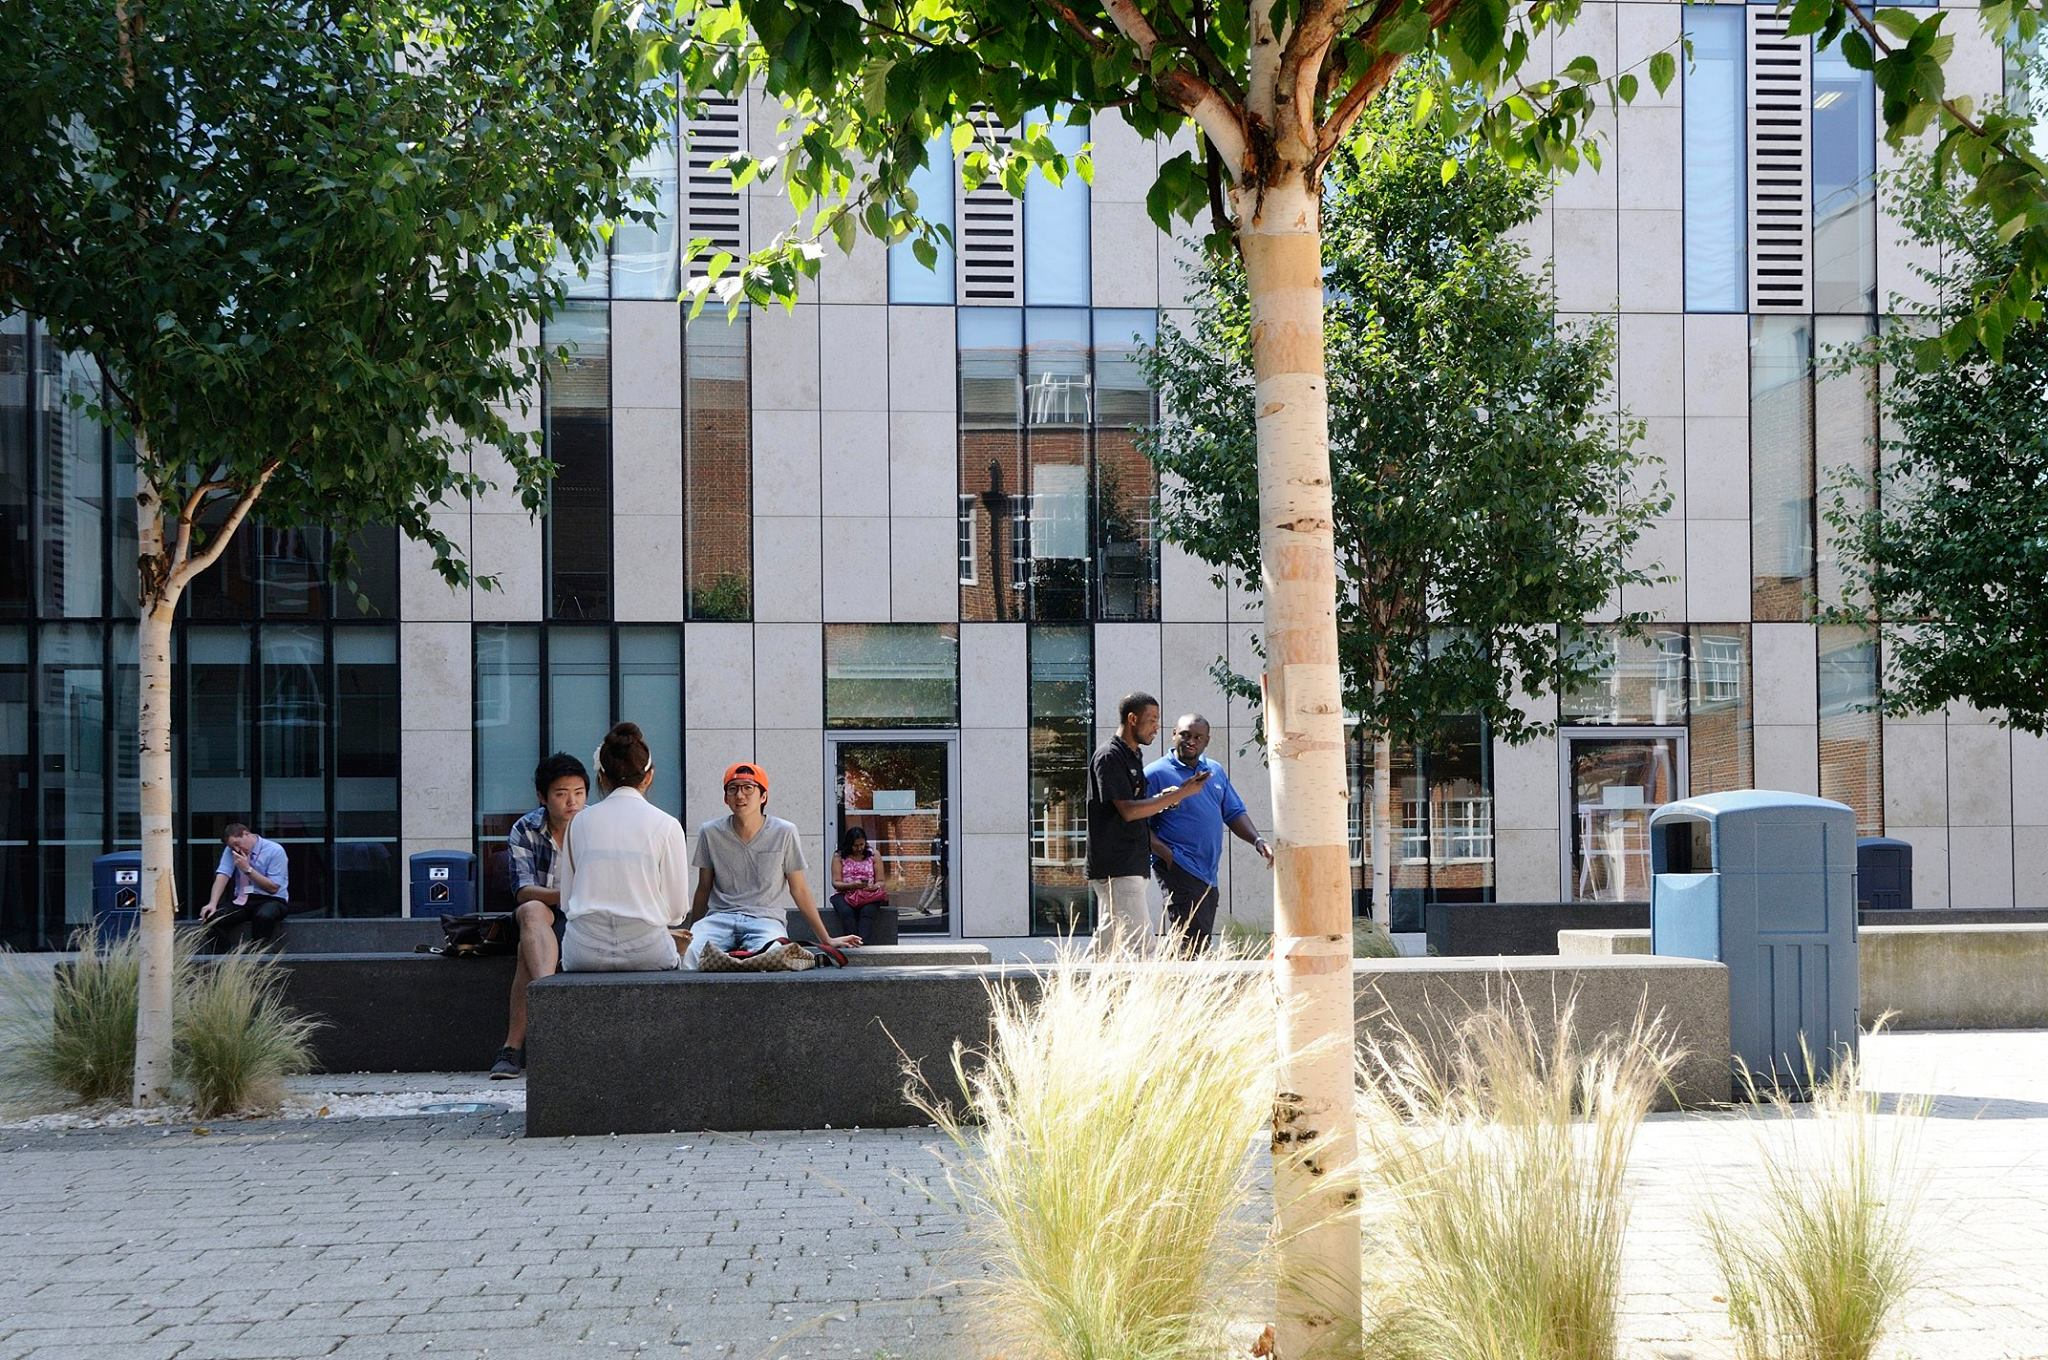 Kingston University – KU Campus